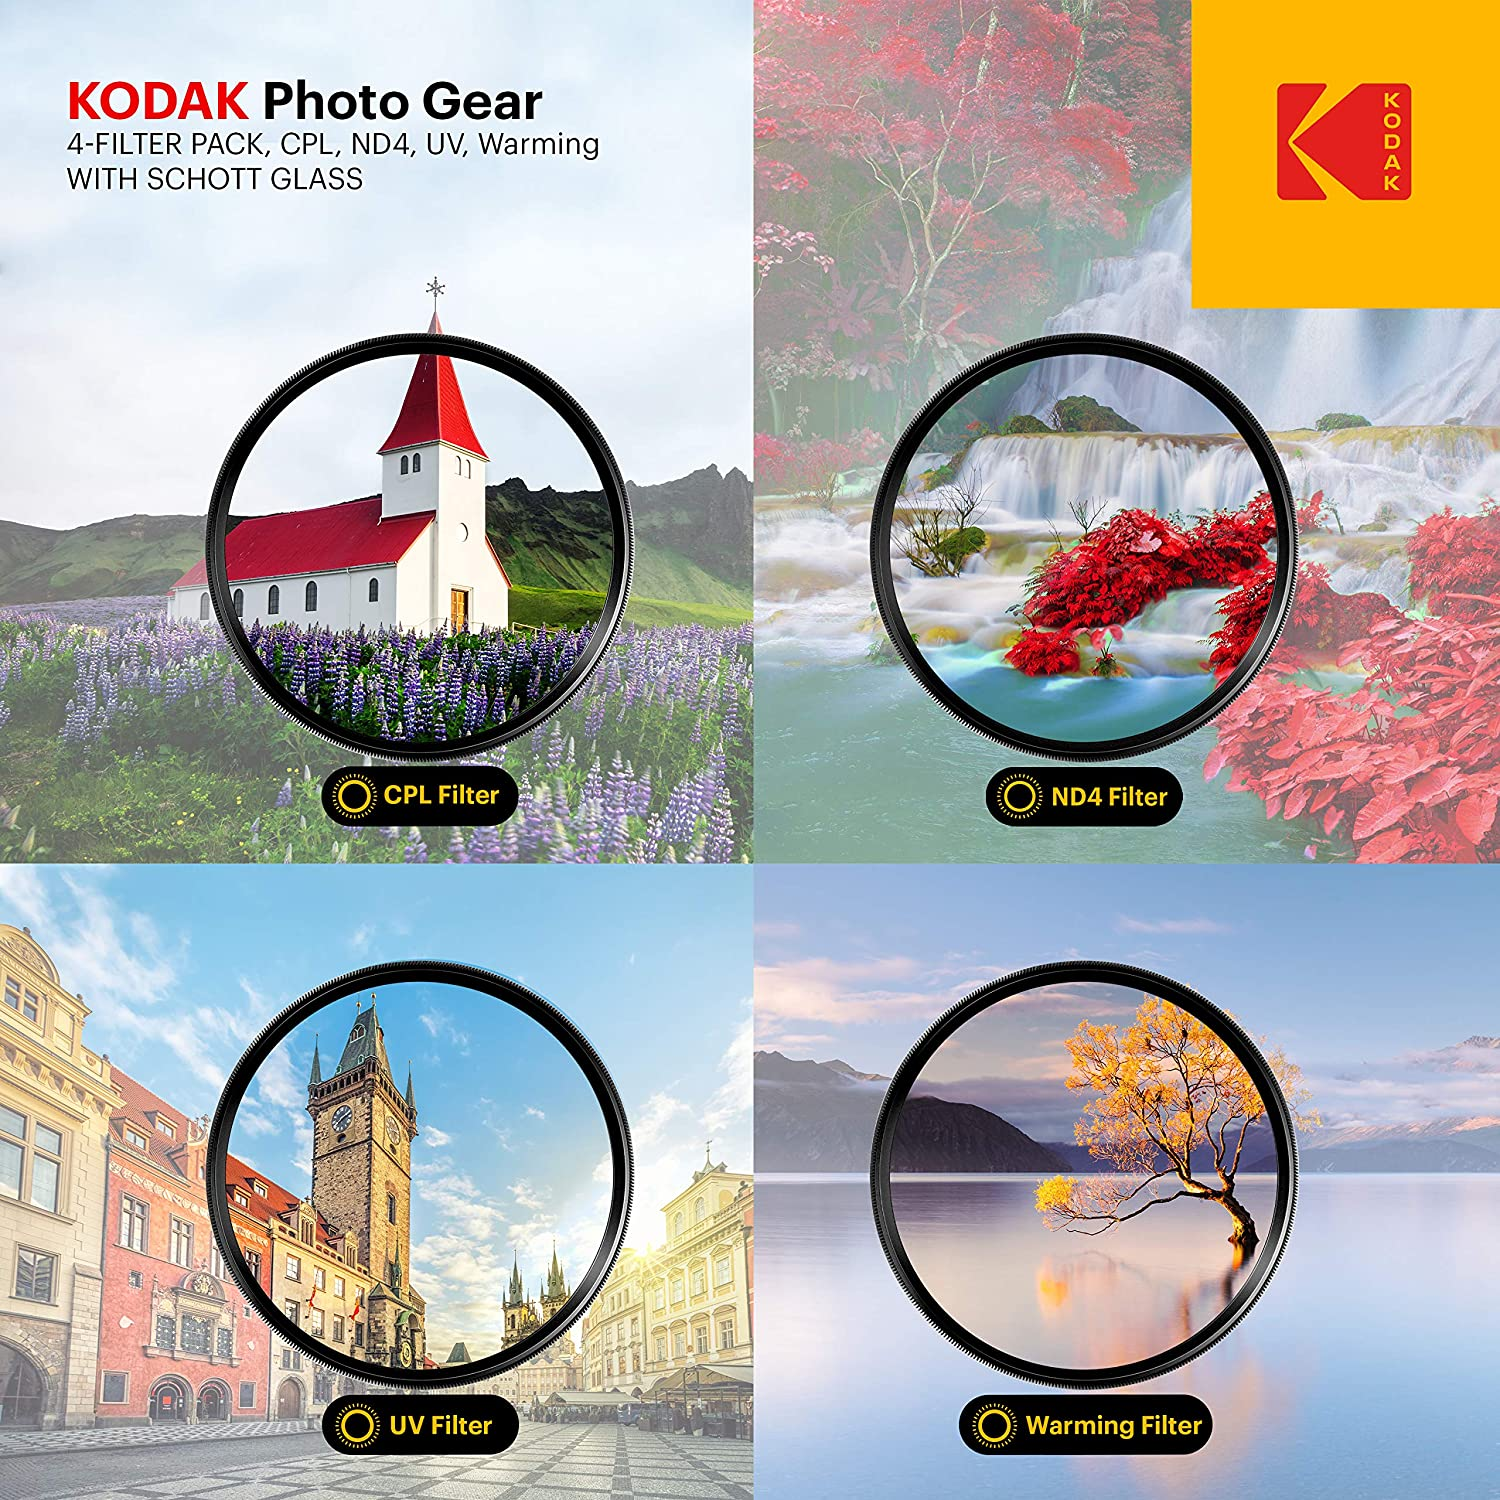 Slim Waterproof Polished Nano Multi-Coated 16 Layers Retro Case /& Mini Guide CPL Pack of 4 UV ND4 /& Warming Filters for Various Effects KODAK 49mm Schott Glass Filter Set PhotoGear +